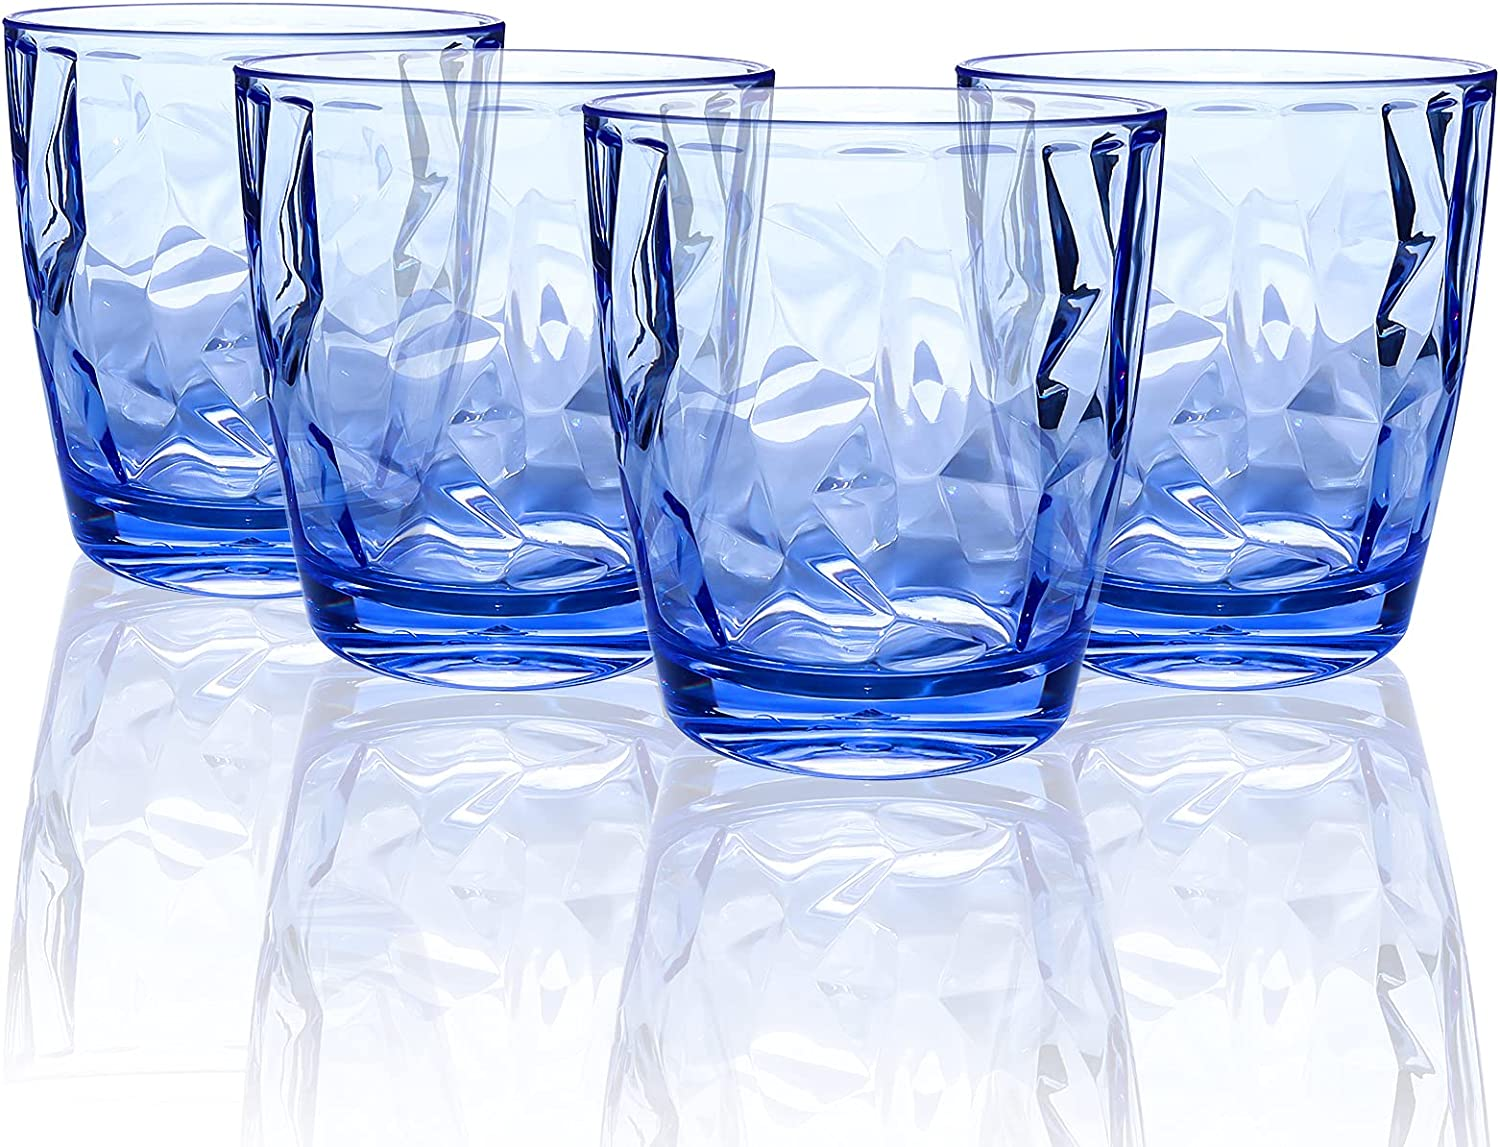 2021new shipping free shipping 10-ounce NEW before selling ☆ Plastic Water Tumblers Set Unbreakab Transparent of 4